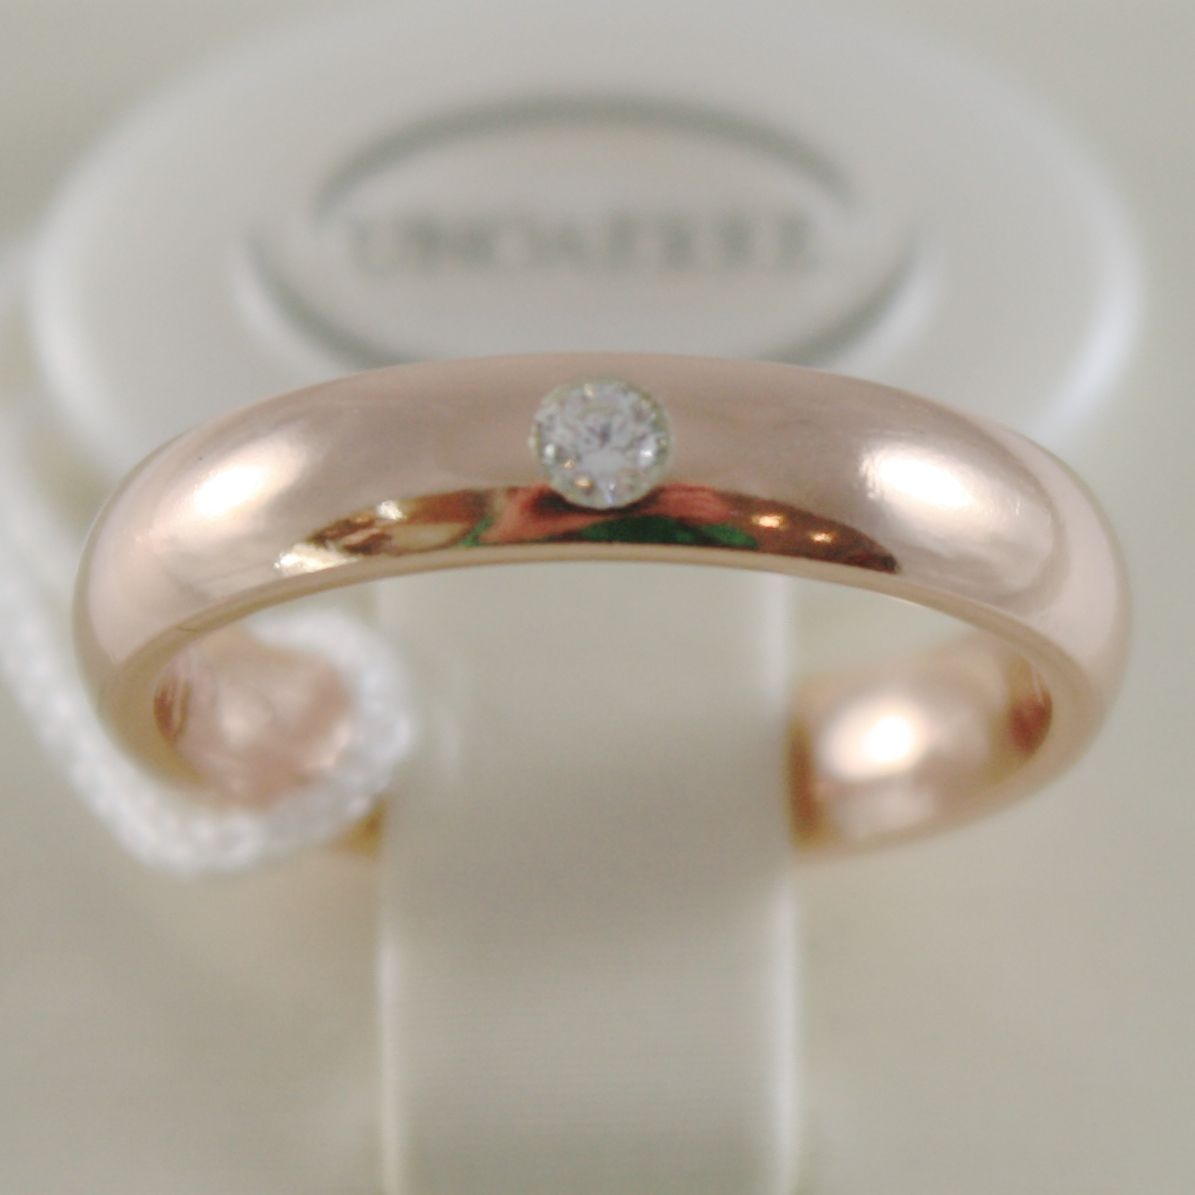 18K ROSE GOLD WEDDING BAND UNOAERRE COMFORT RING 4 MM, DIAMOND MADE IN ITALY